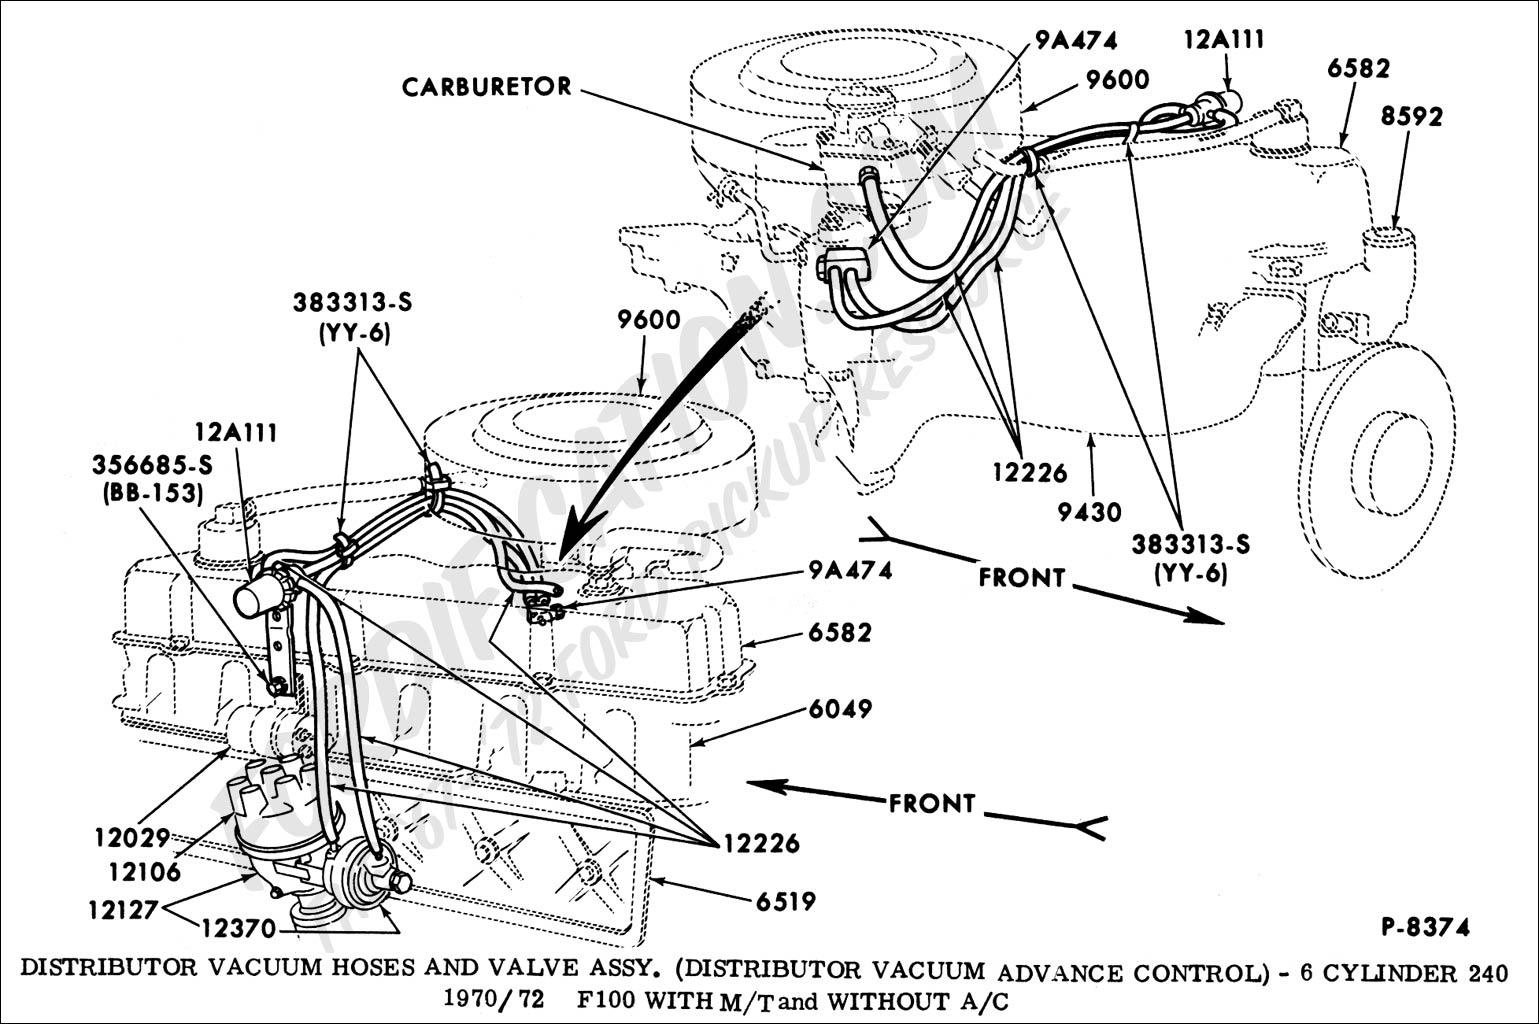 1970 Ford F100 240 Wiring Diagram Will Be A Thing 1966 Truck For Alternator Technical Drawings And Schematics Section I Diagrams Pick Up V8 1961 1963 F 100